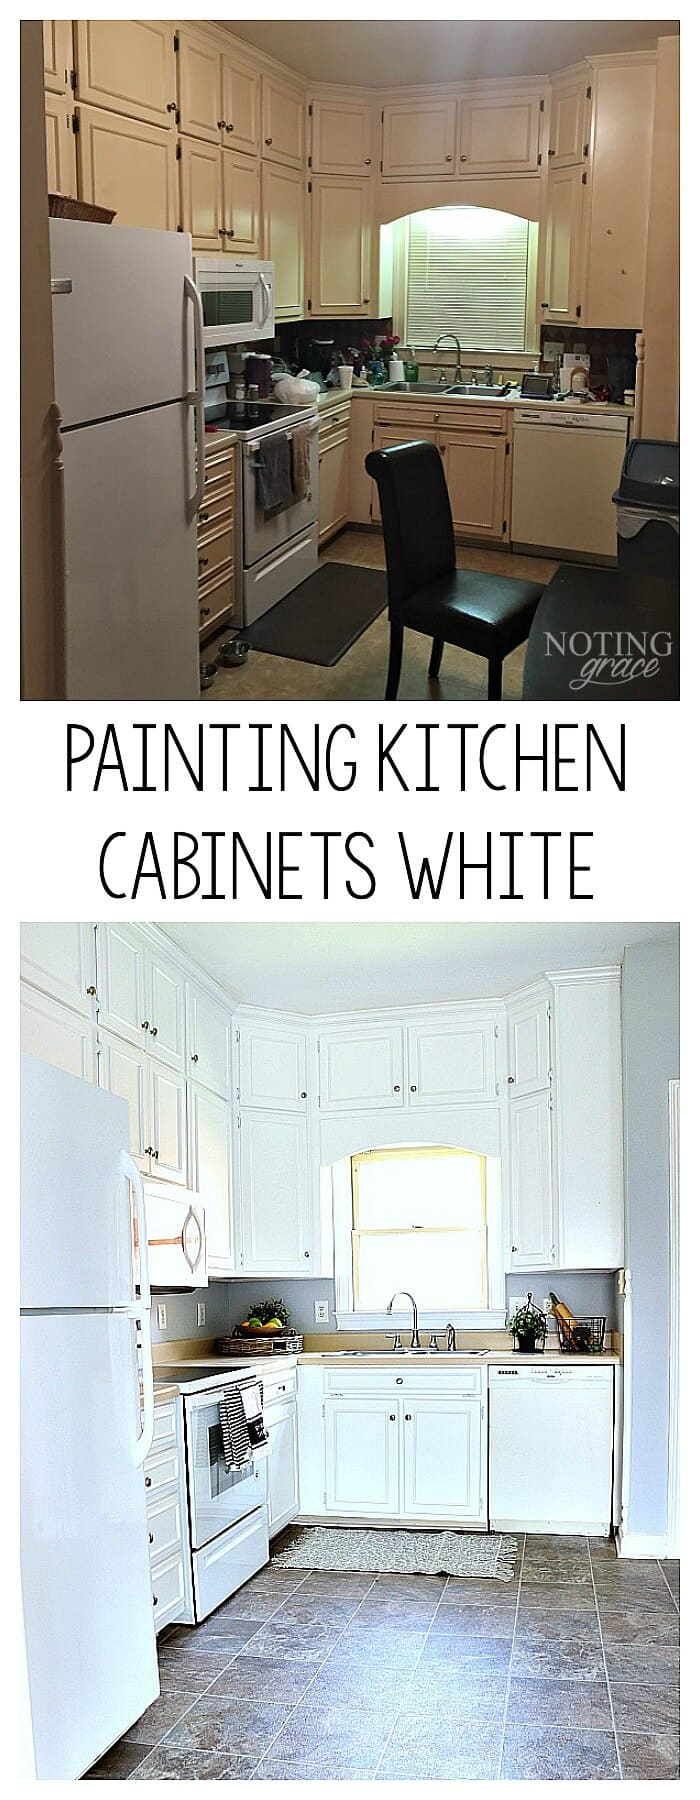 and size cool before i what large oak ideas colors of pictures cabinet cabinets my color white should with kitchen paint painted after full painting